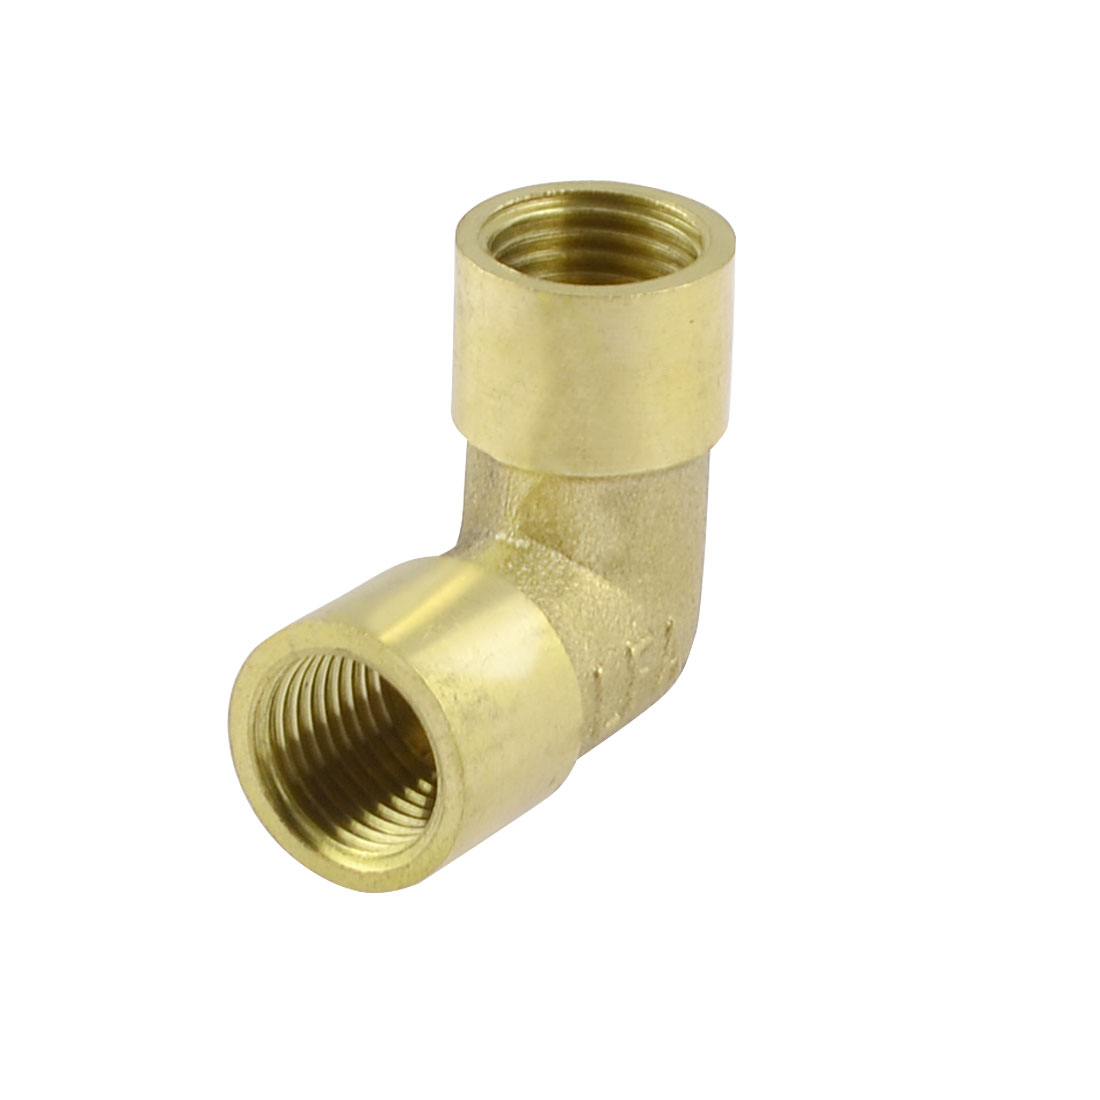 Brass 1/4BSP Female Thread Right Angle Pneumatic Piping Elbow Quick Connector